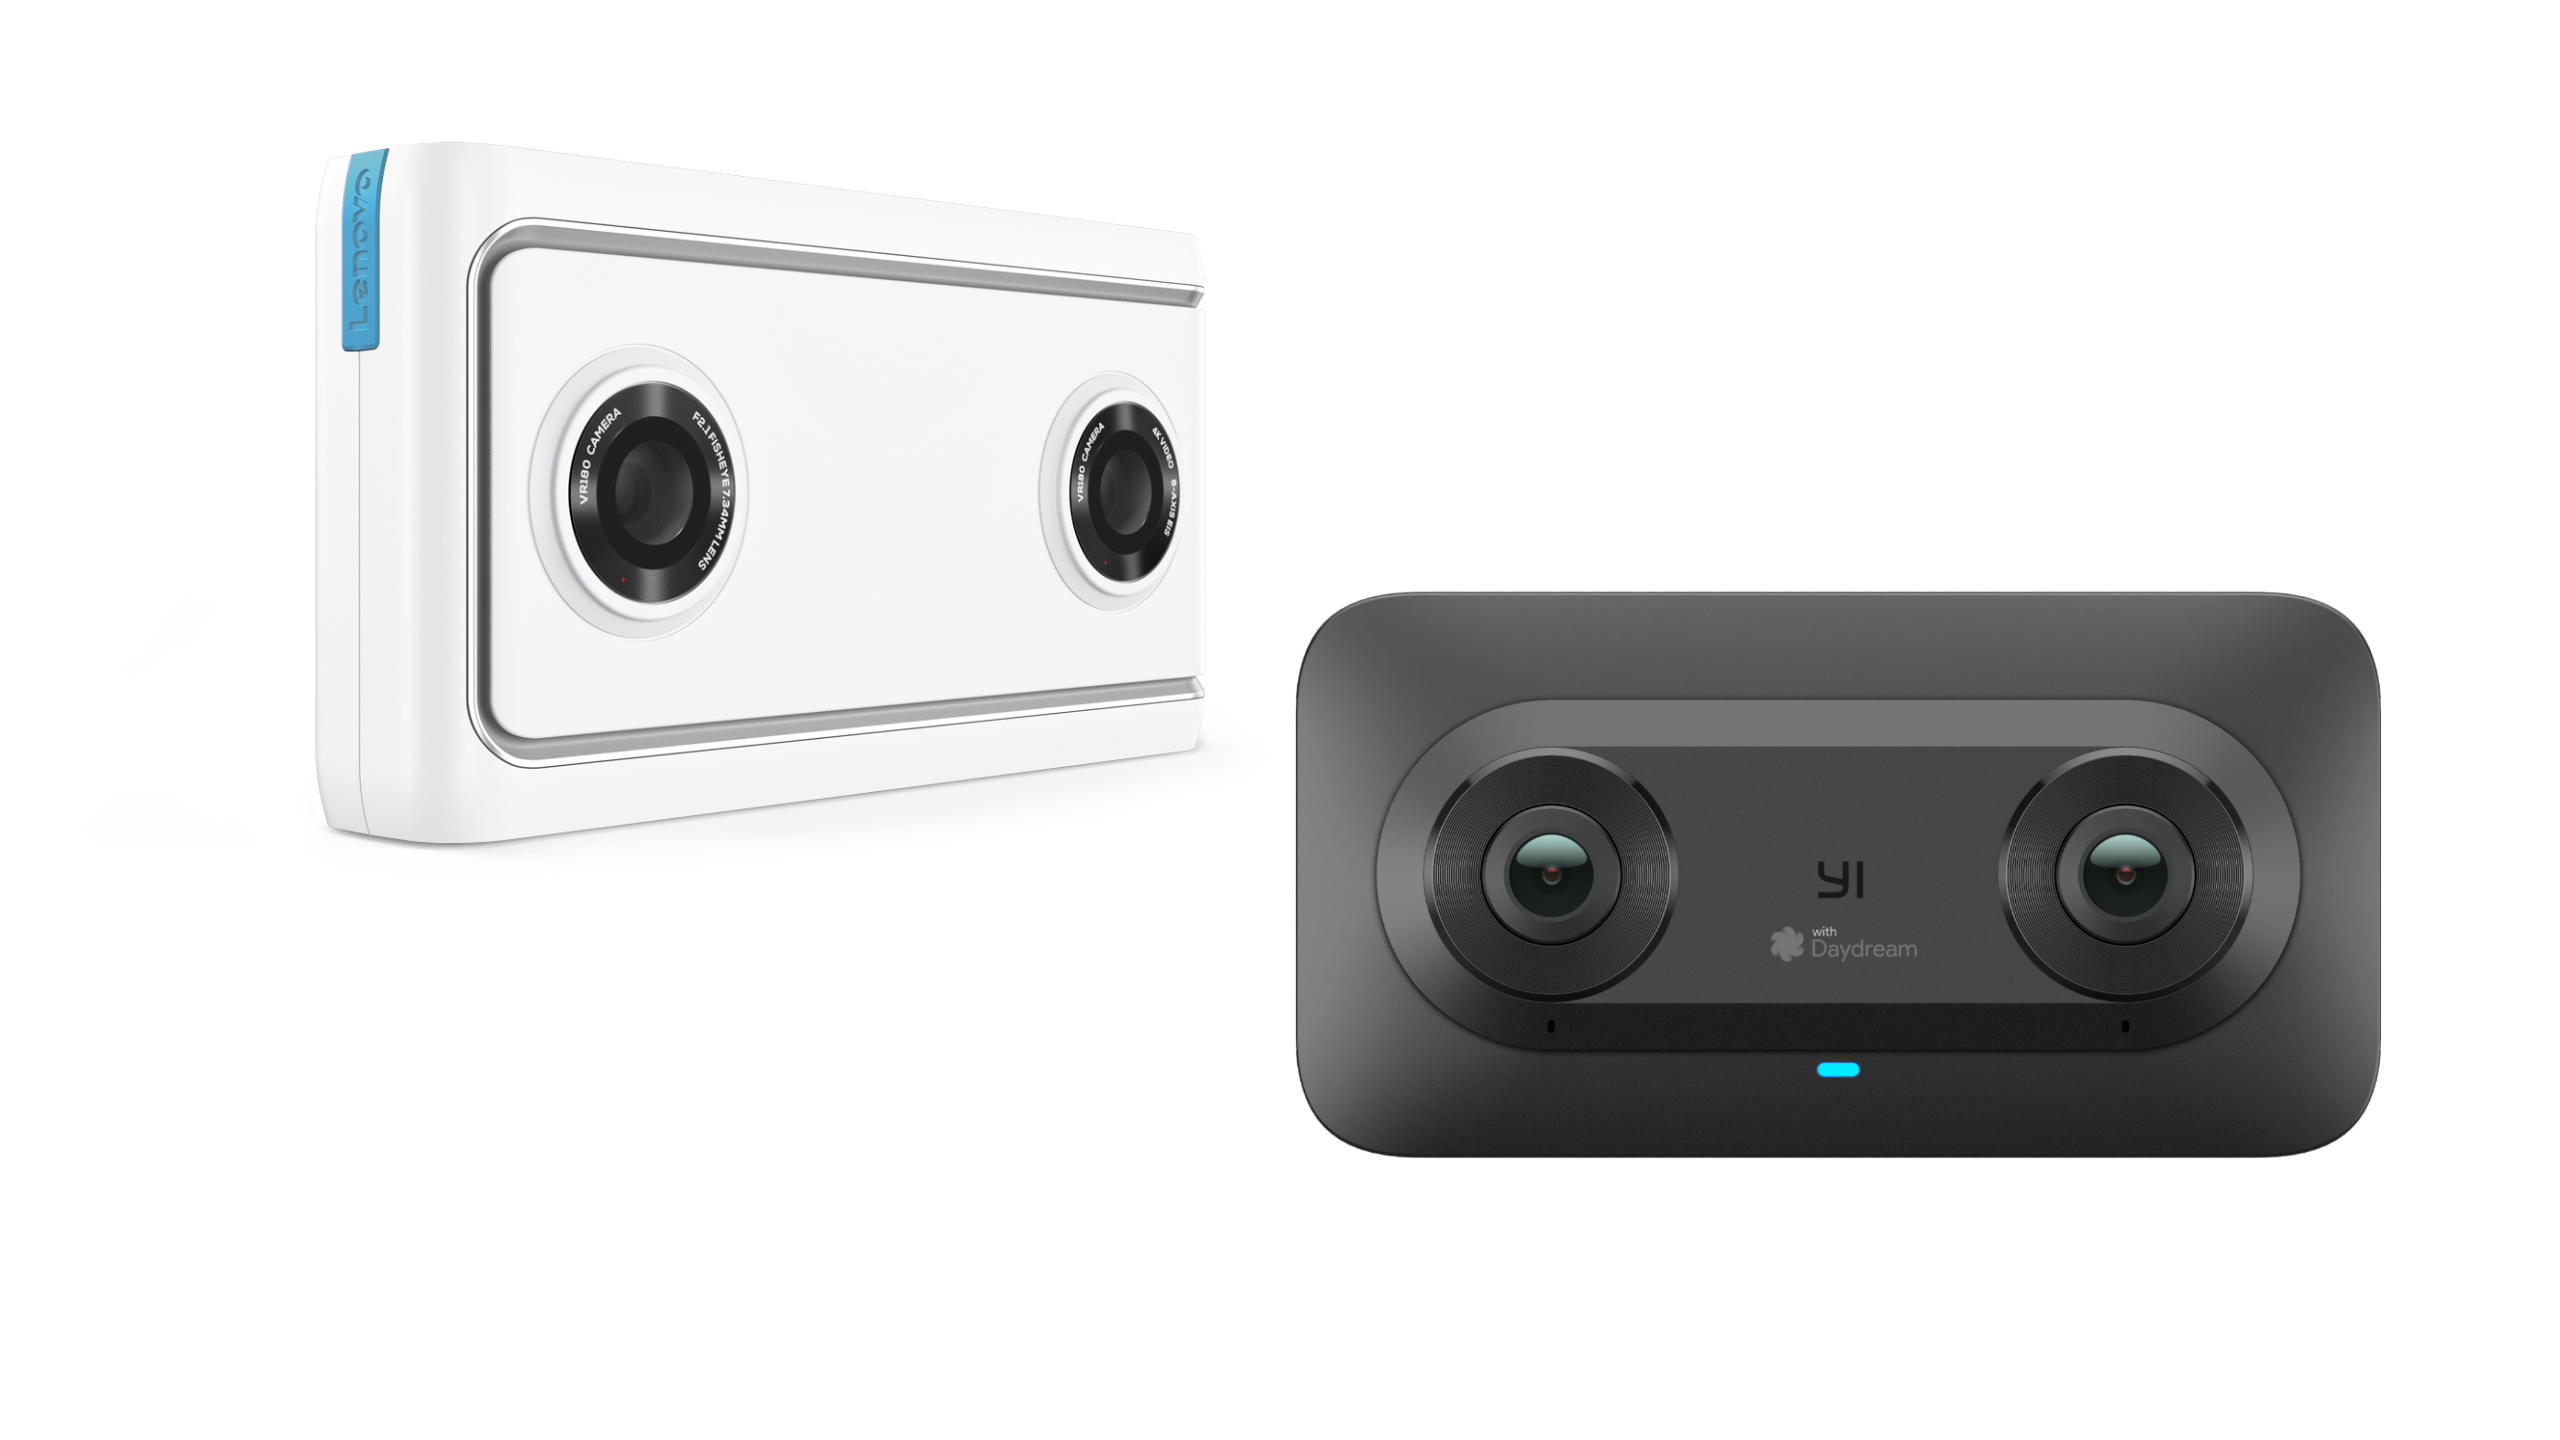 CES 2018: Google Announces 'VR180' 3D Consumer Cameras Coming from